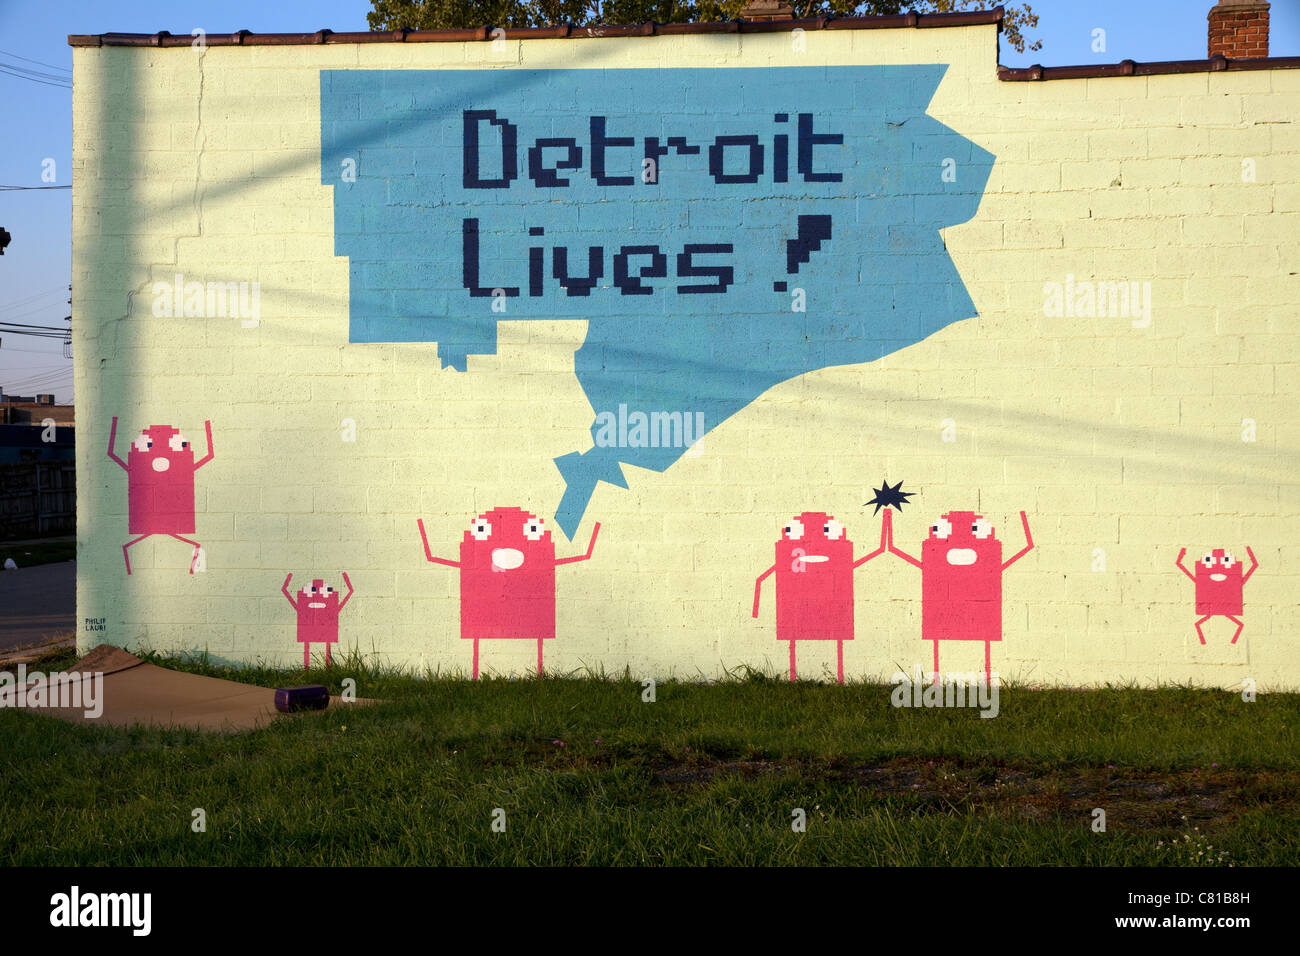 Urban Art Detroit Stock Photos & Urban Art Detroit Stock Images - Alamy